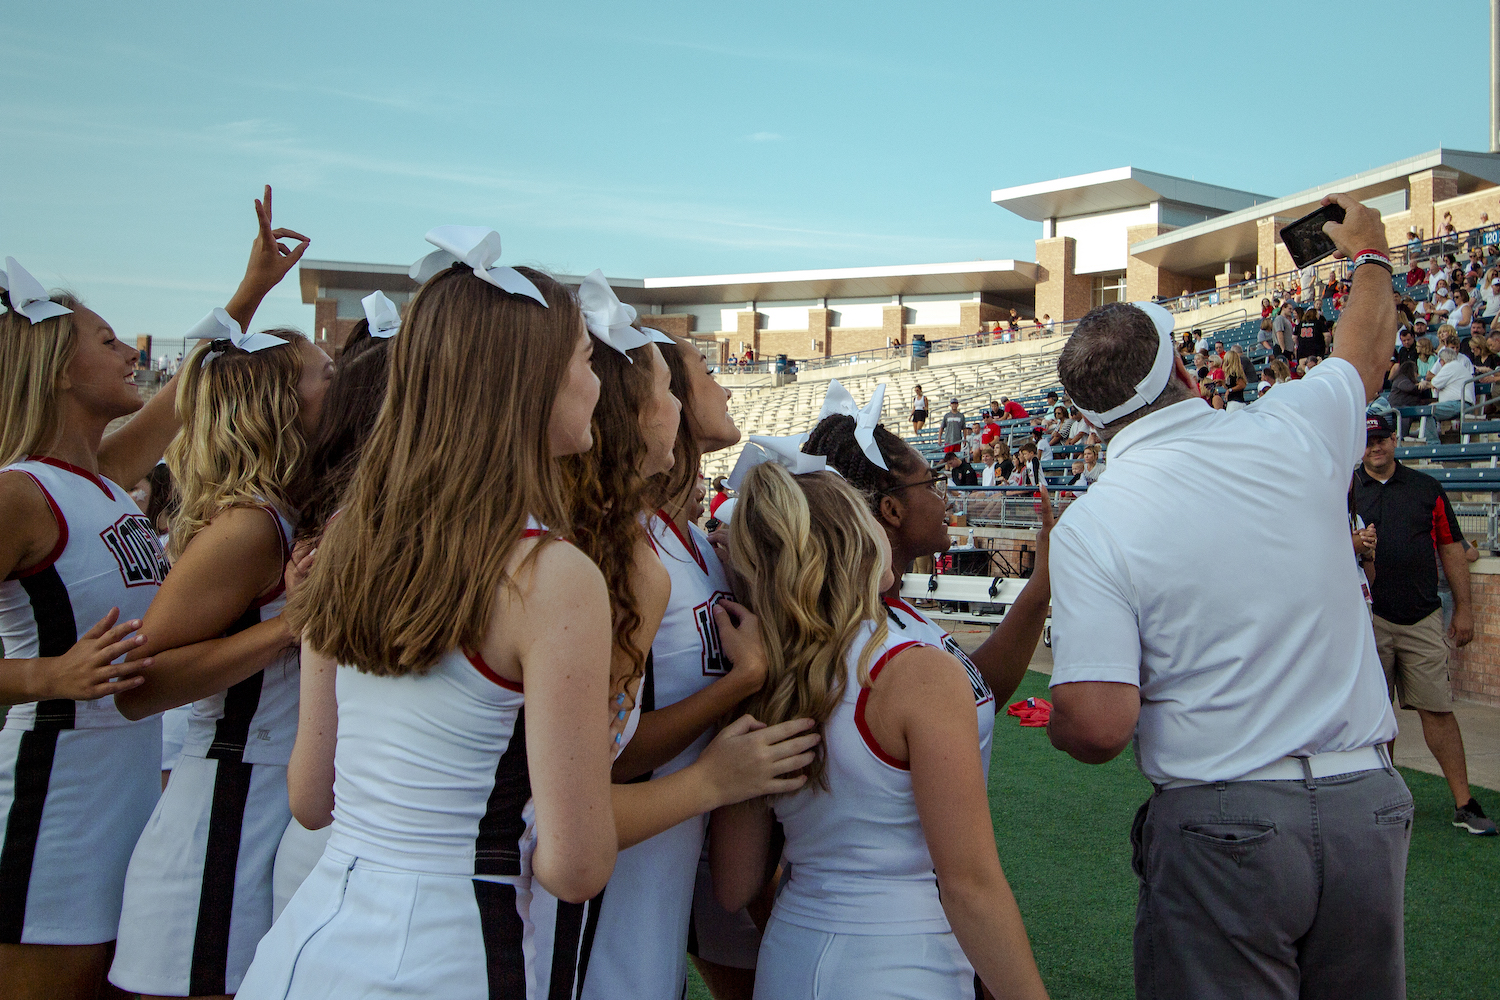 Superintendent+Dr.+Mike+Goddard+takes+a+selfie+with+the+cheerleading+team+while+the+football+team+warms+up+on+the+field.+